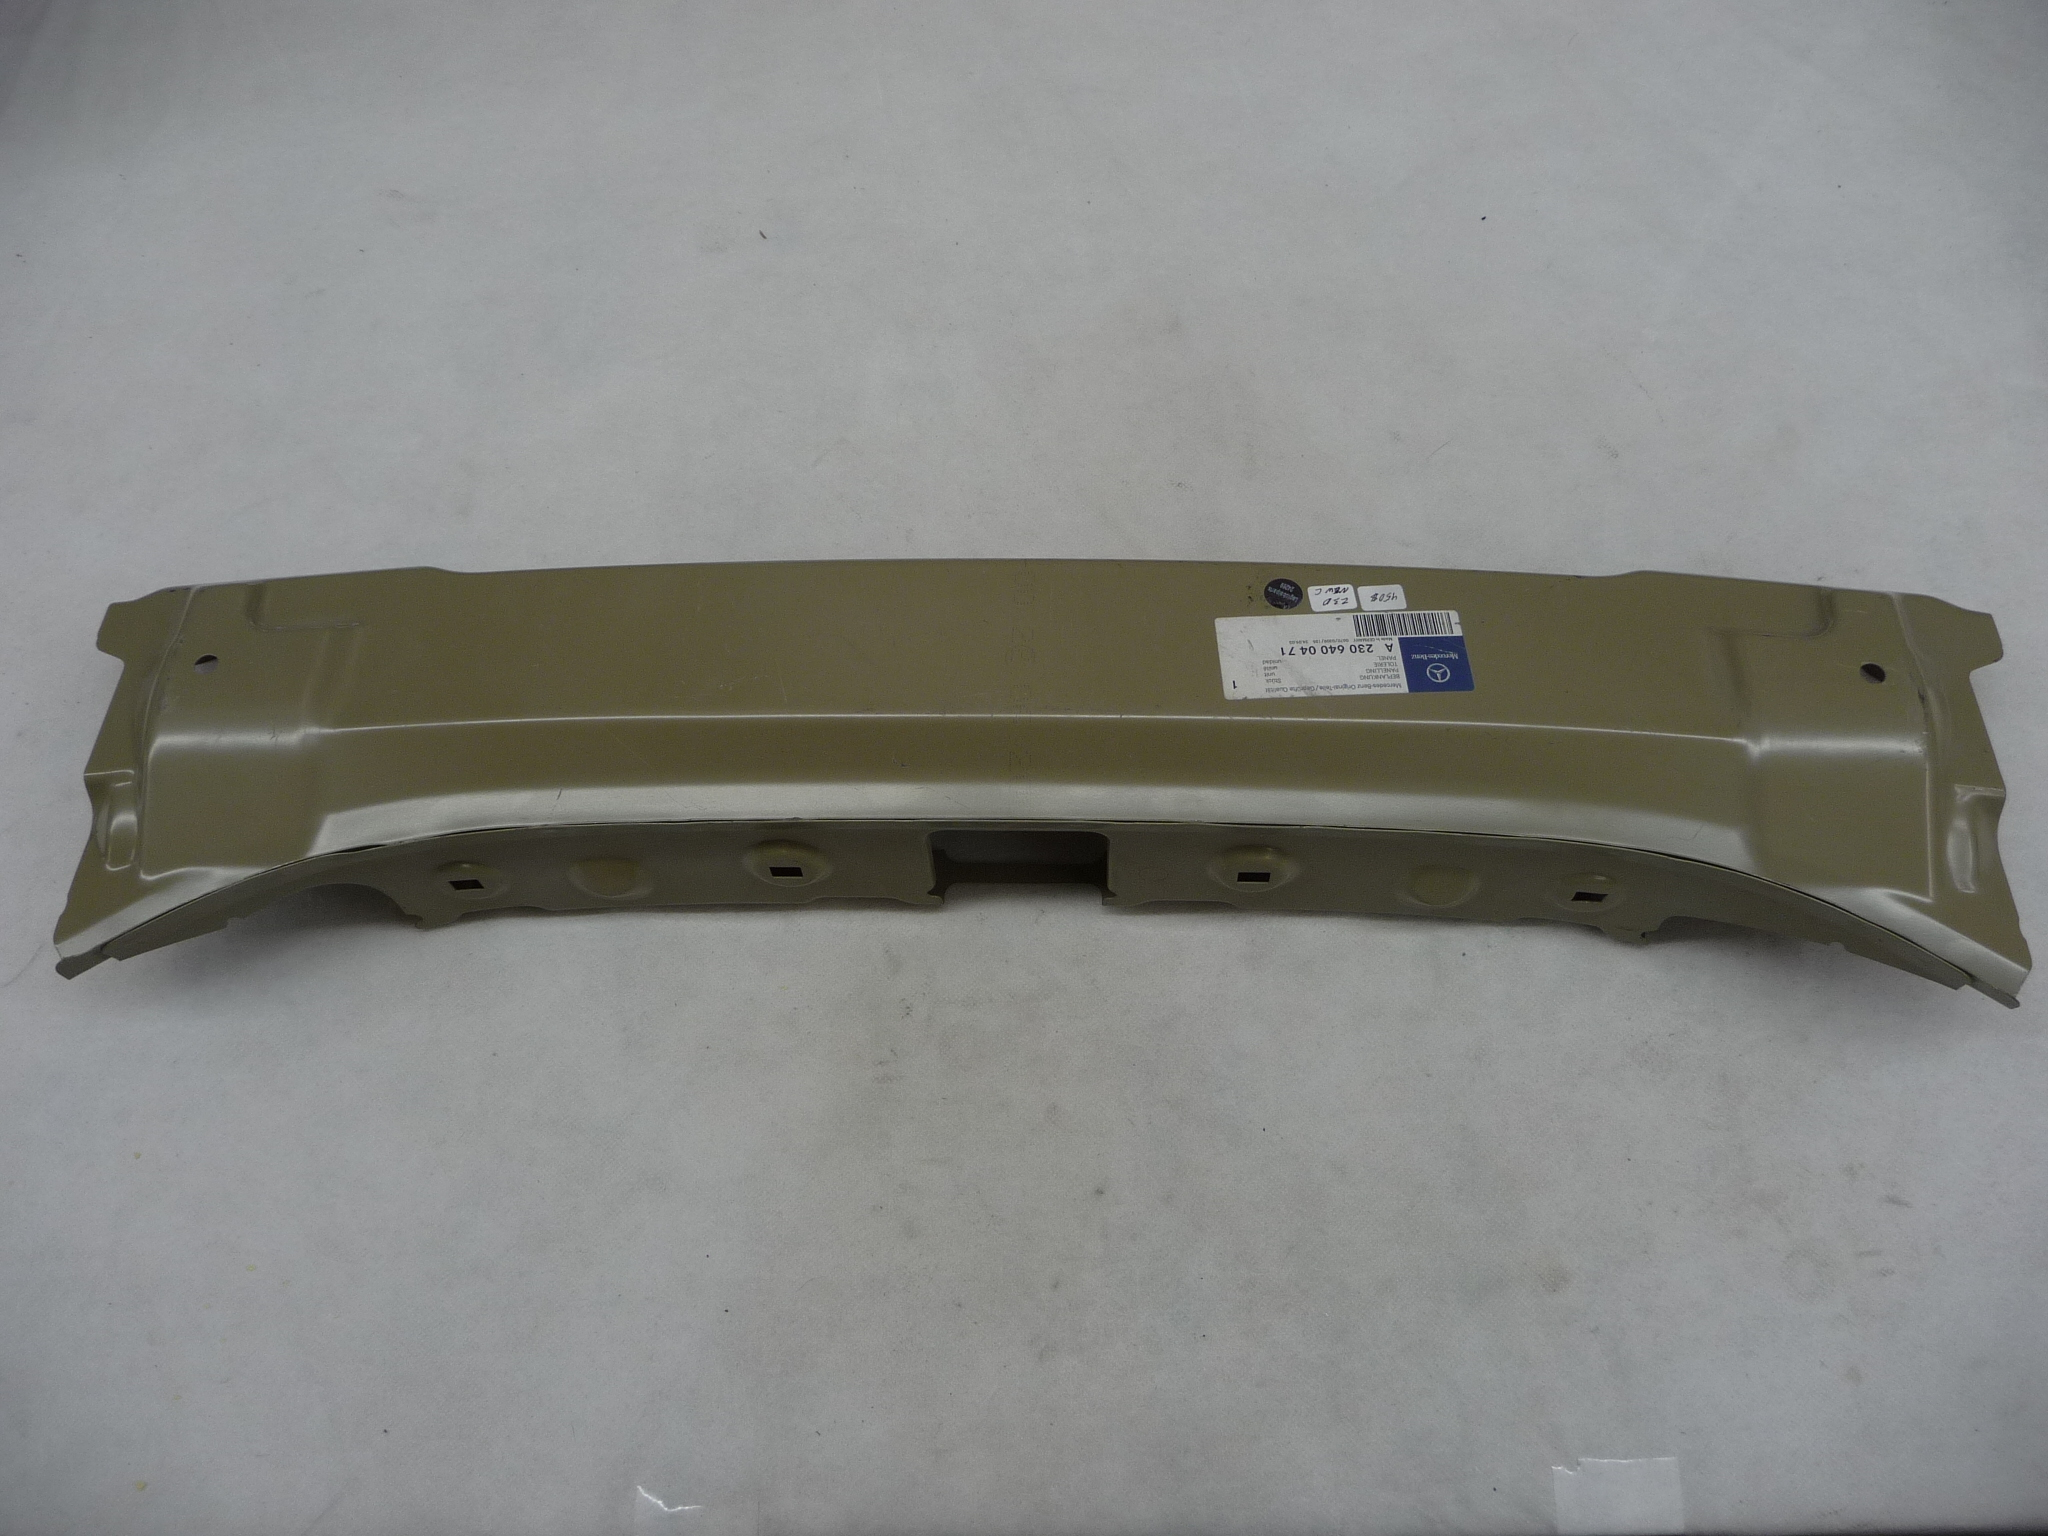 2003 2004 2005 2006 2007 2008 2009 2010 2011 2012 Mercedes Benz SL55 AMG SL500 SL600 Rear Body Outer Panel A2306400471 OEM OE